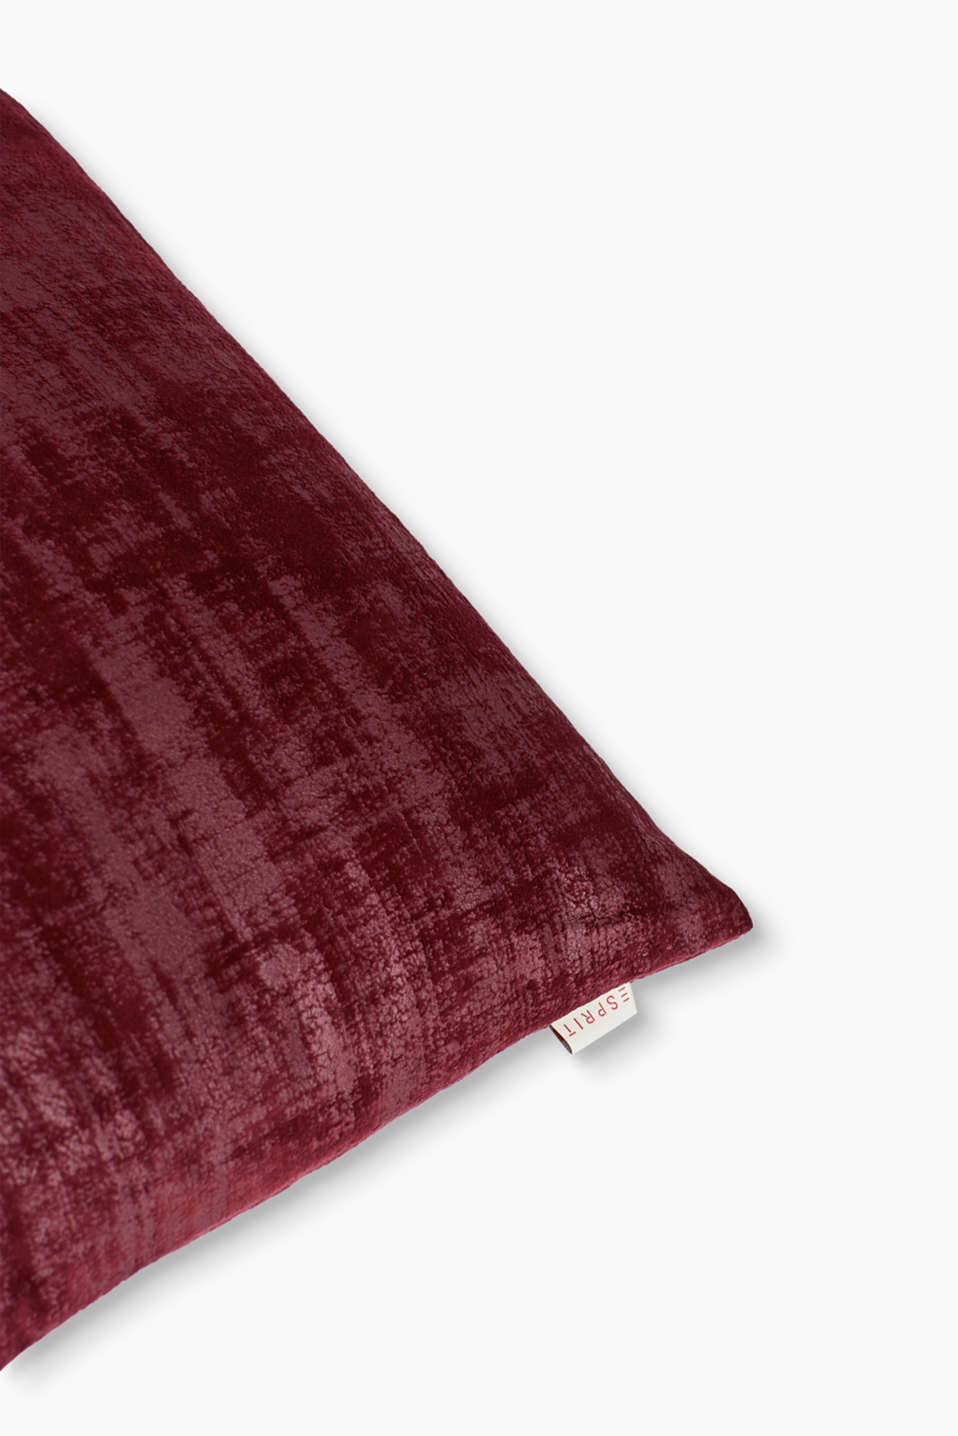 Scratch cushion cover in velvet, BORDEAUX, detail image number 1